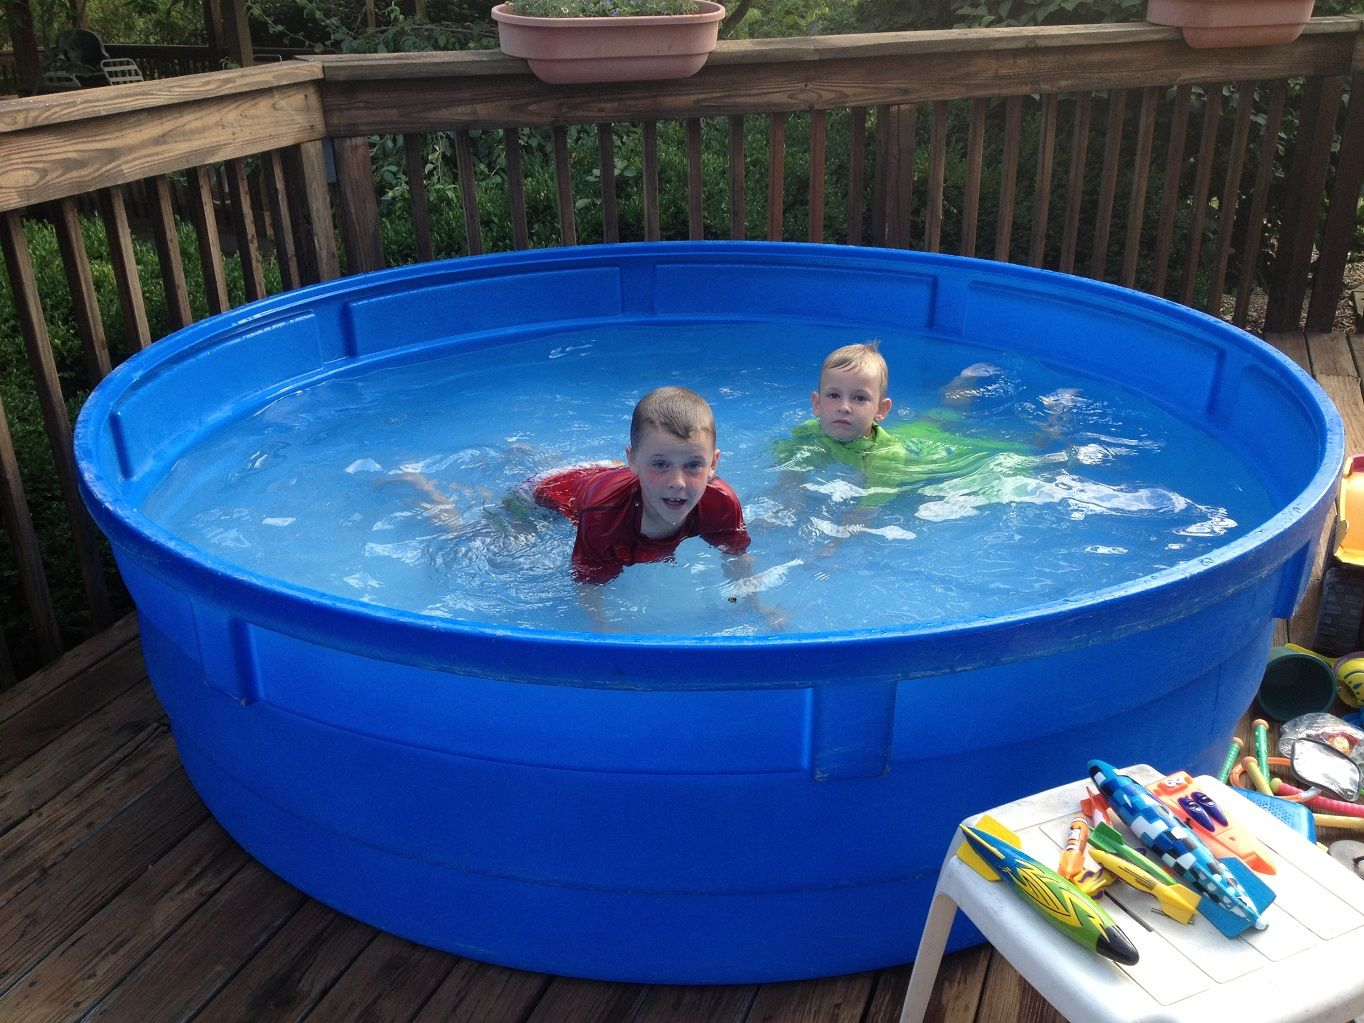 Exciting pools walmart for enjoyable outdoor swimming pool for Plastik pool rund